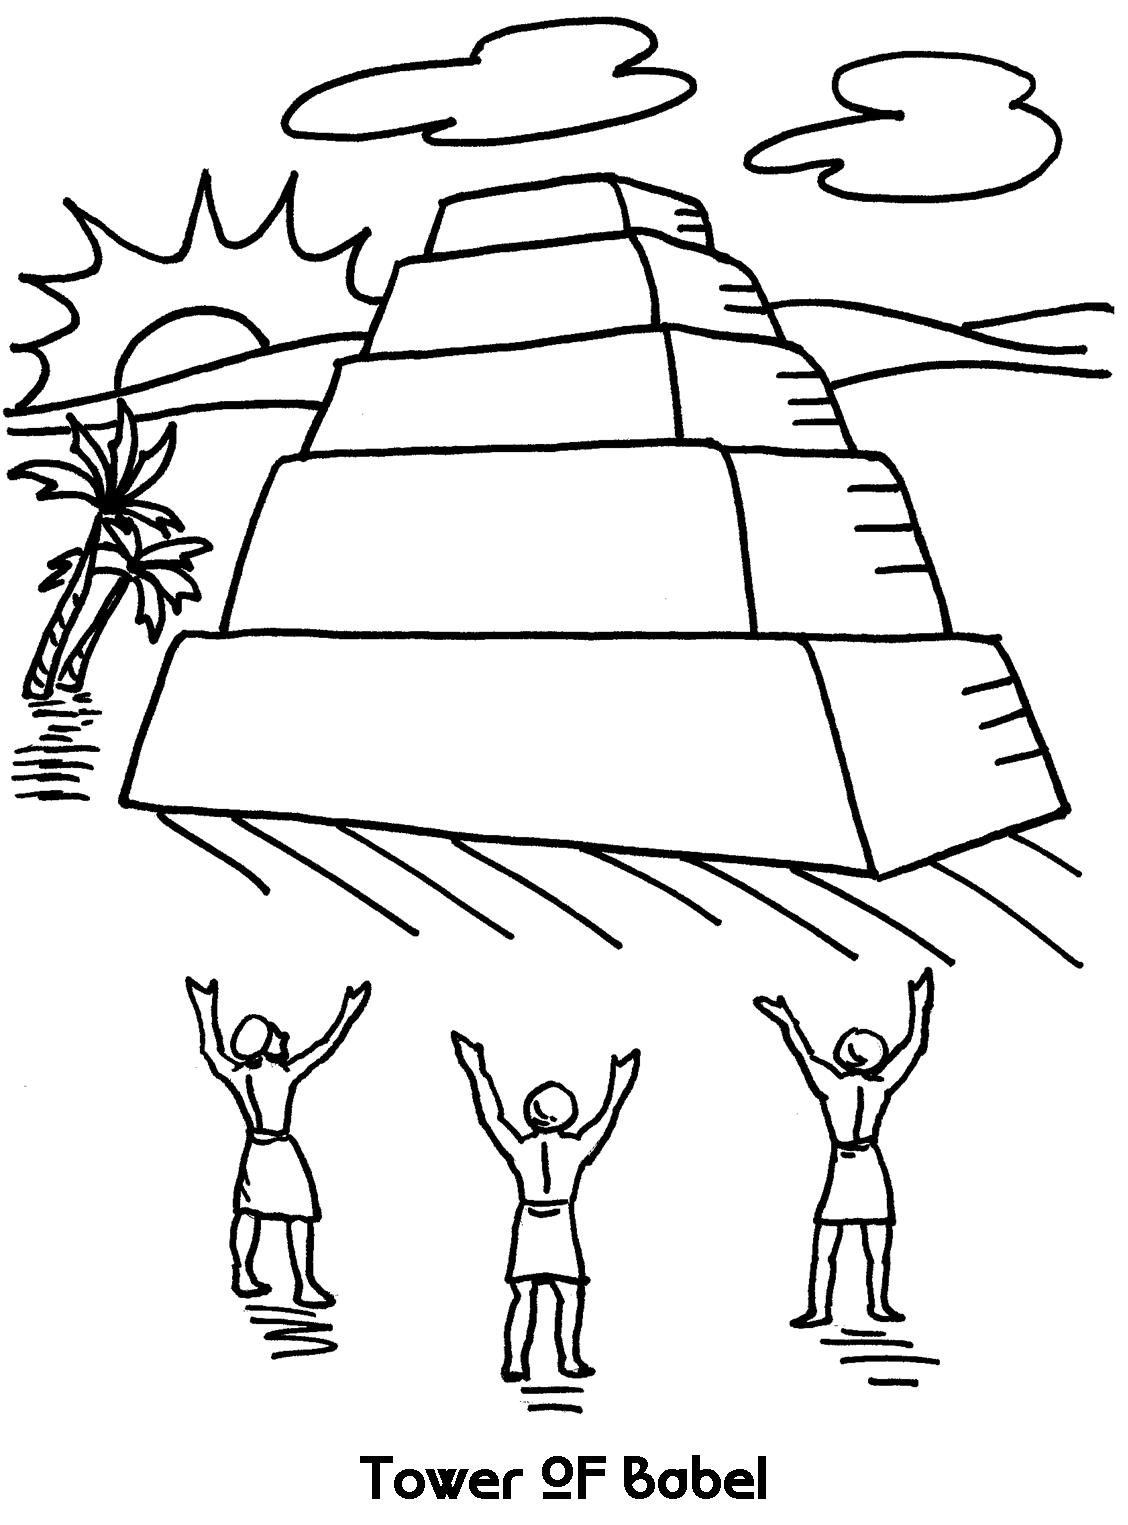 tower of babel coloring sheet picture of tower of babel coloring page kids play color babel coloring sheet tower of